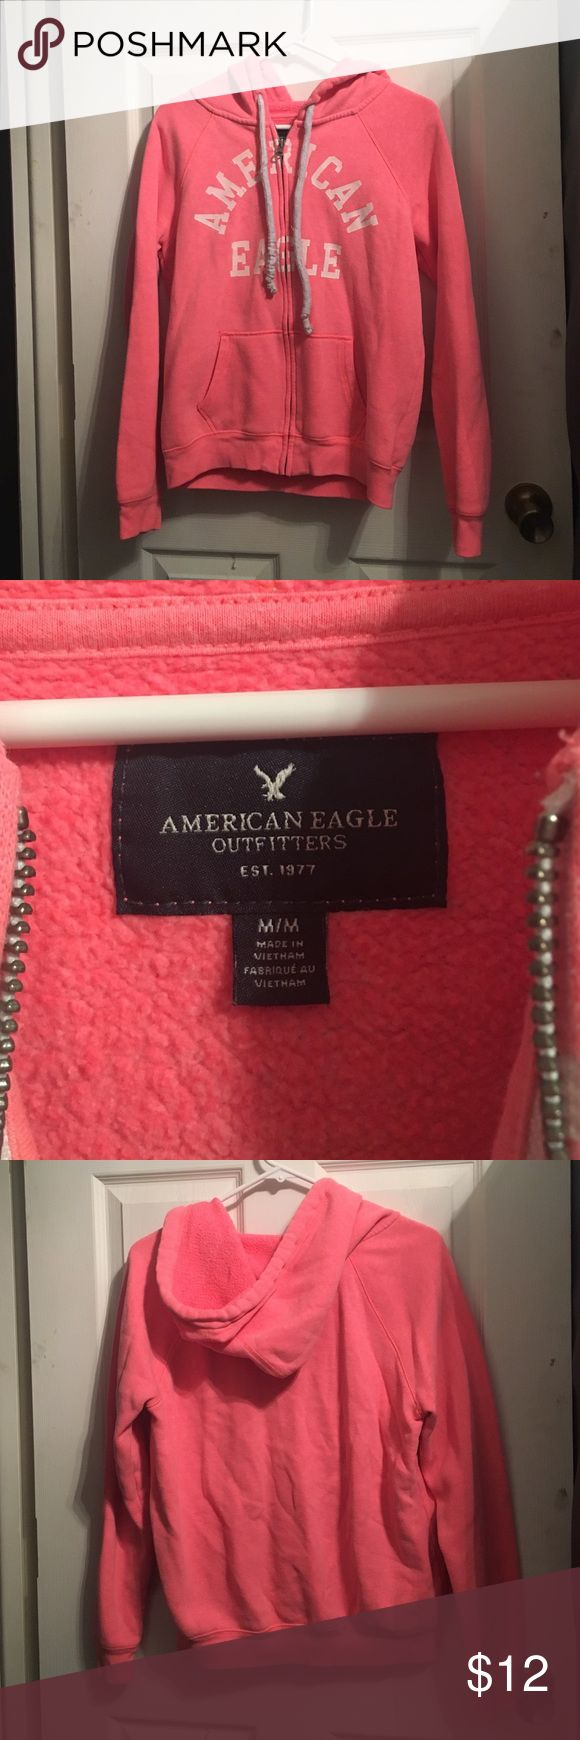 American Eagle full zip hoodie Good condtion. Size medium. Strings are a little dingy and have a small amount of pilling. May come cleans with some white revive :) American Eagle Outfitters Tops Sweatshirts & Hoodies